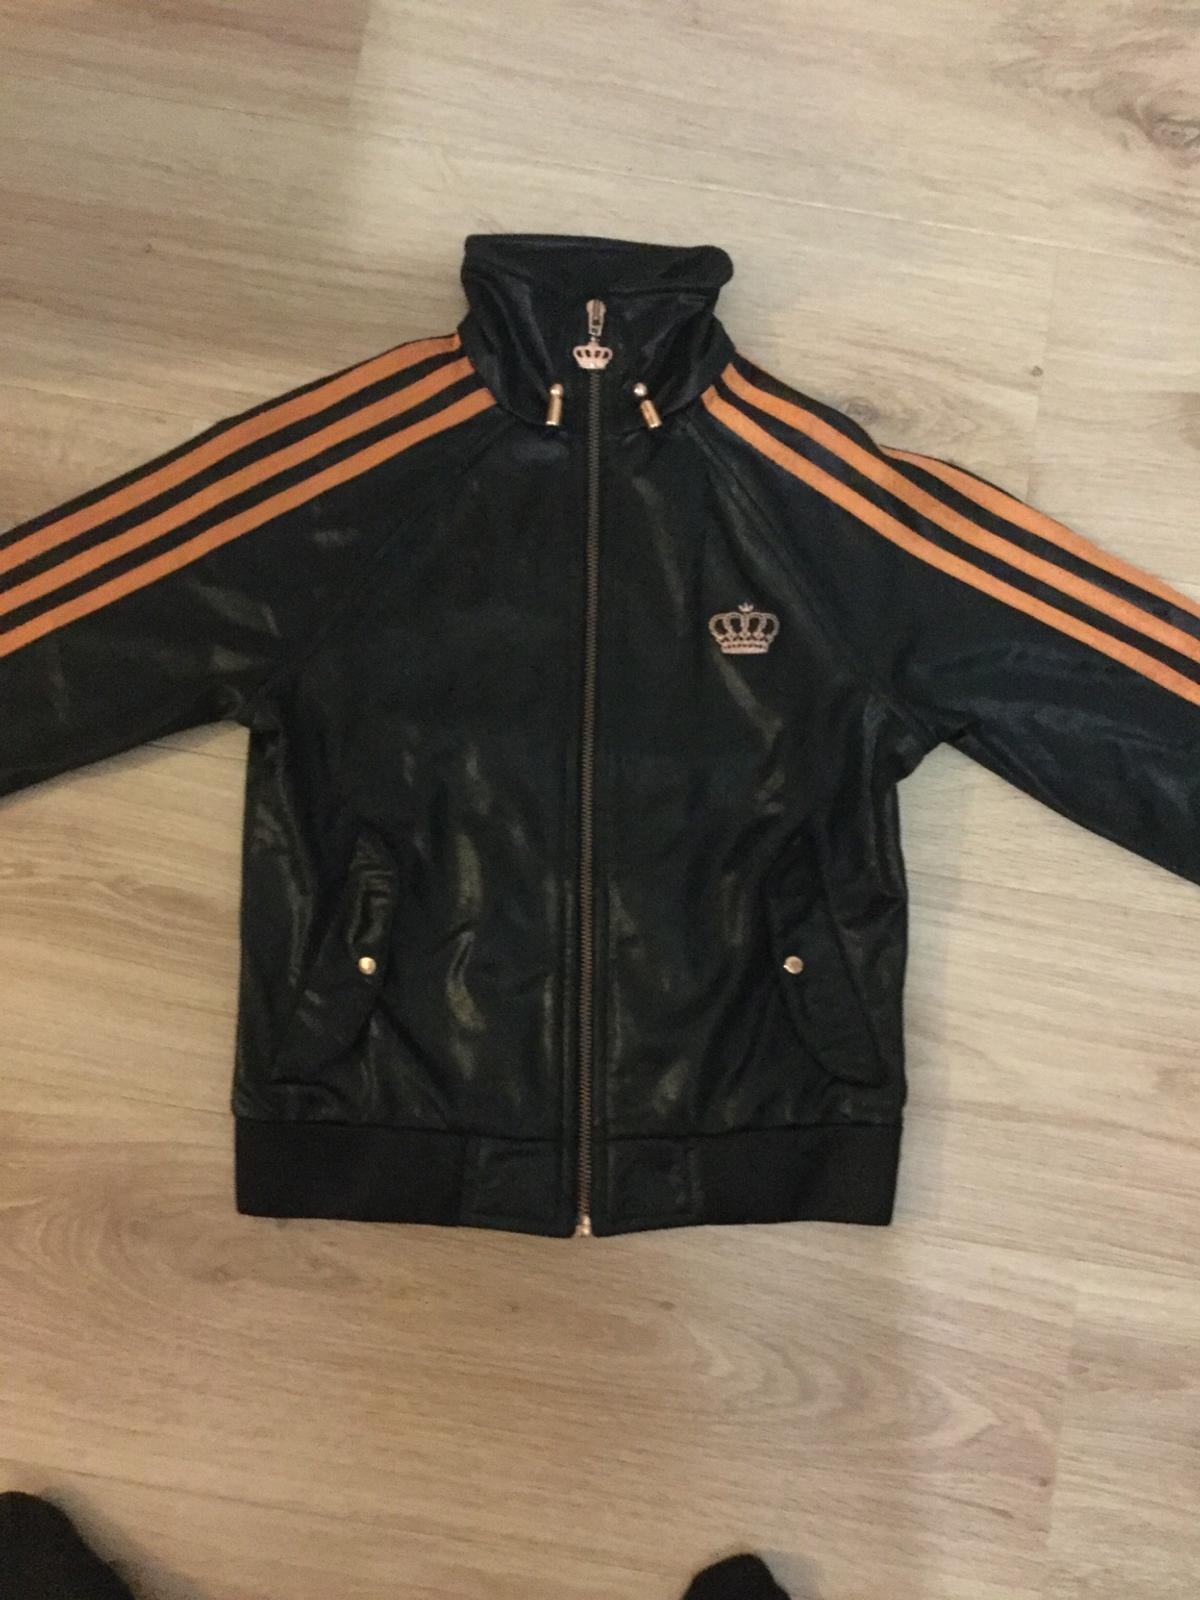 Contable Constitución Inhibir  Adidas 'Respect Me' Jacket (Black and Orange) in L6 Liverpool for £10.00  for sale | Shpock